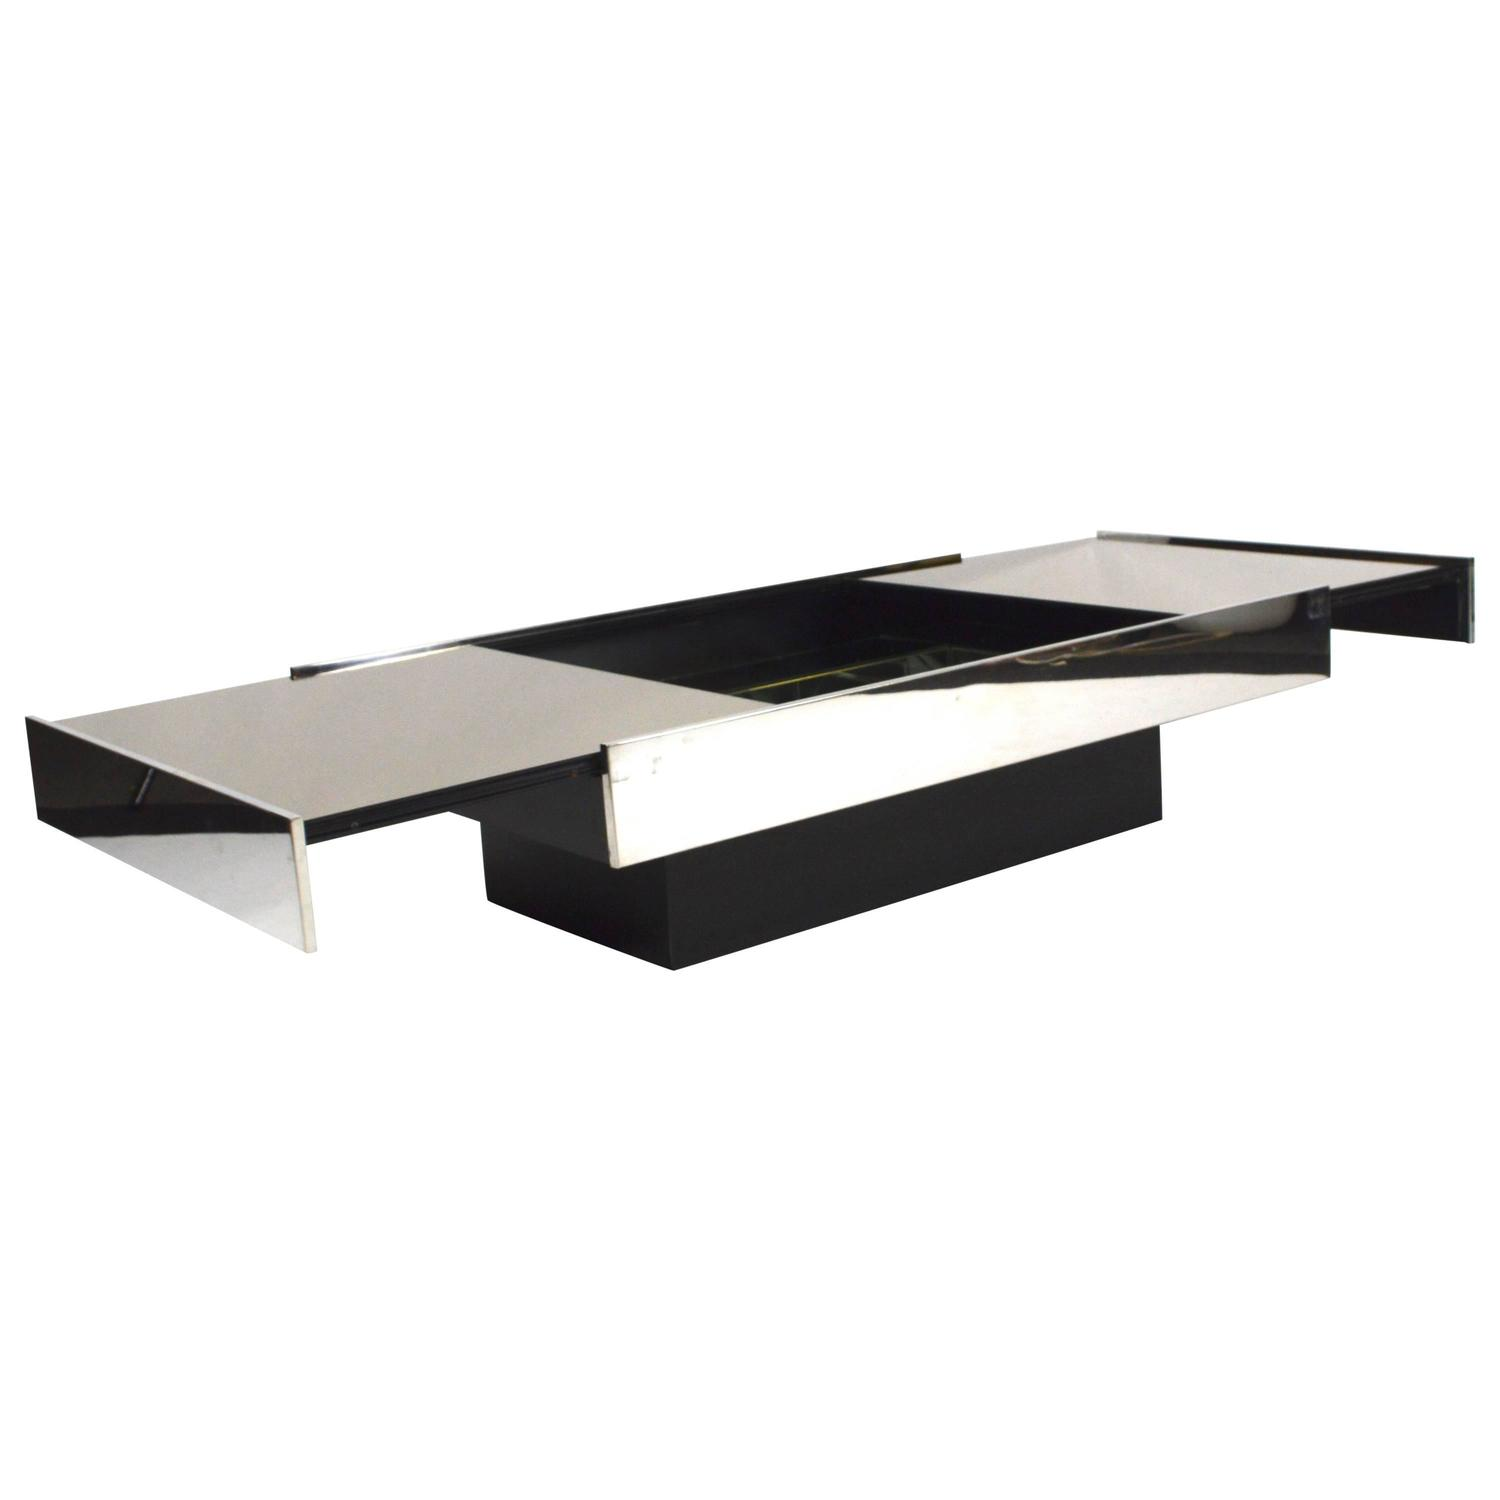 Willy Rizzo For Cidue Coffee Table Italy 1970s For Sale At 1stdibs